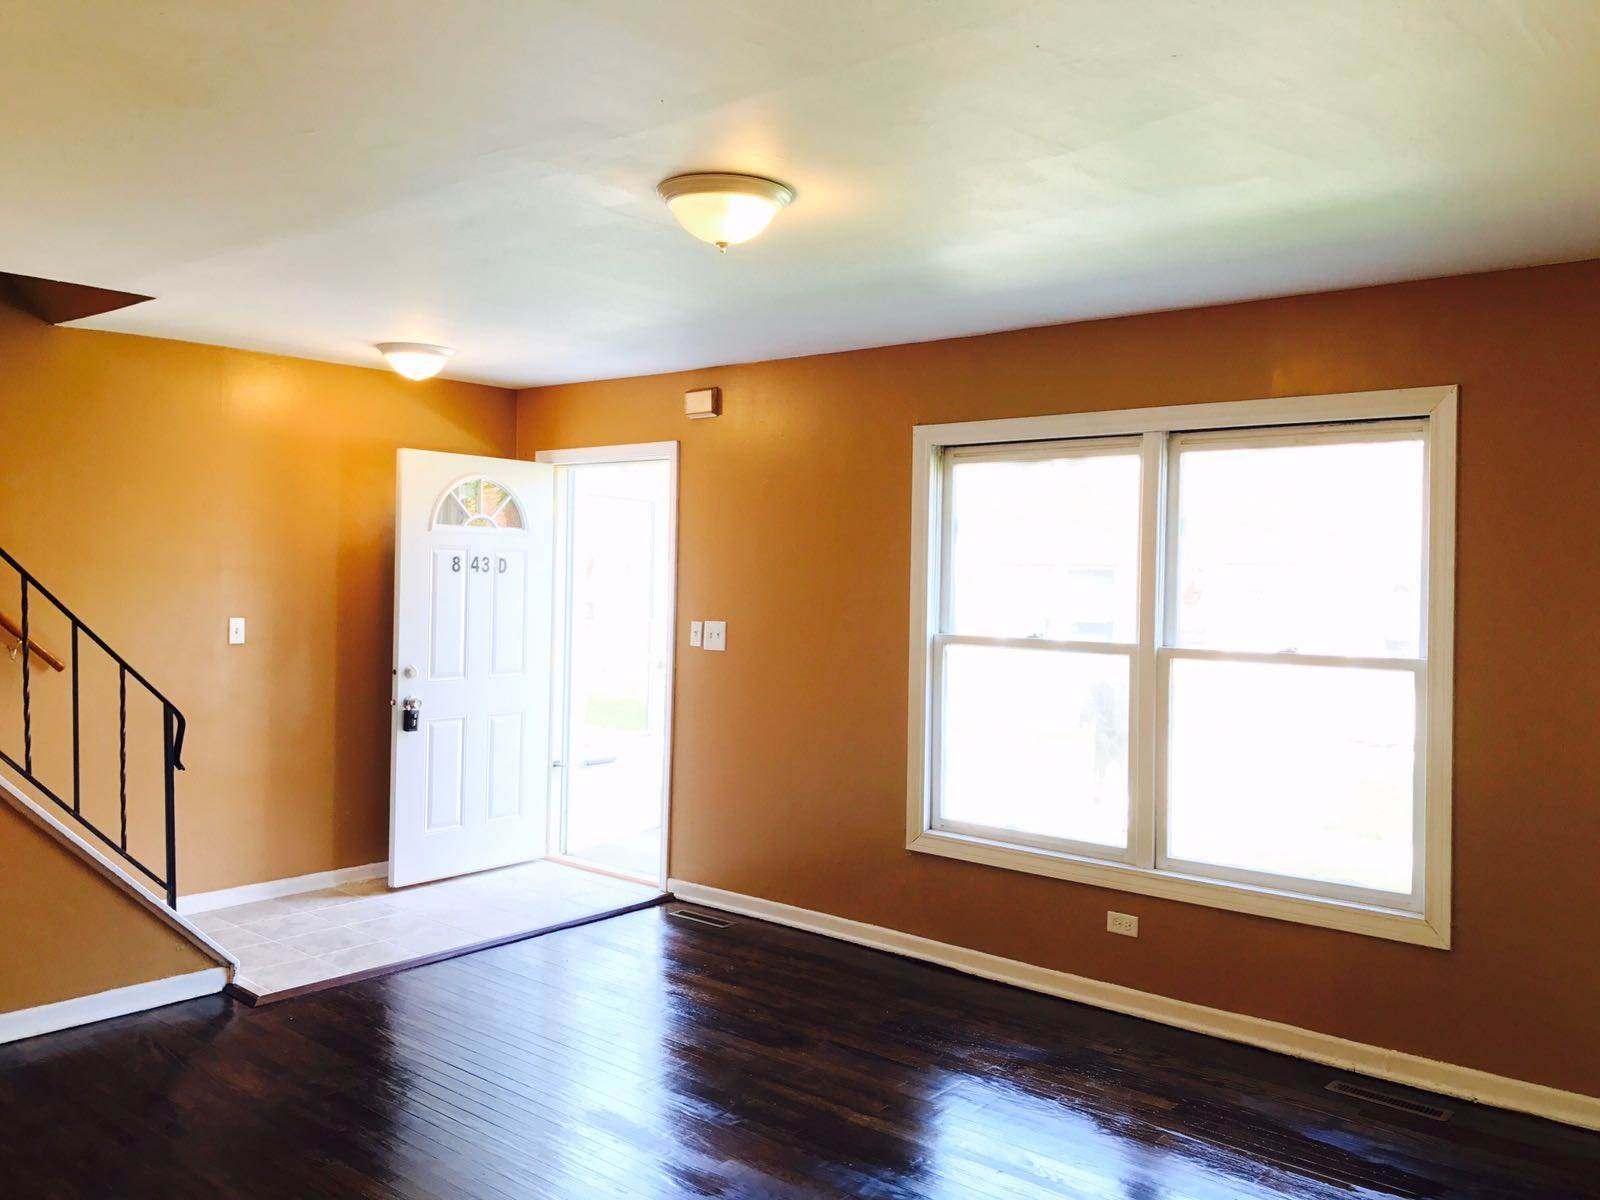 Newly RENOVATED Town House For RENT   3 Bedroom 2Bath  Basement   Private  Lawn. Newly RENOVATED Town House For RENT   3 Bedroom 2Bath  Basement